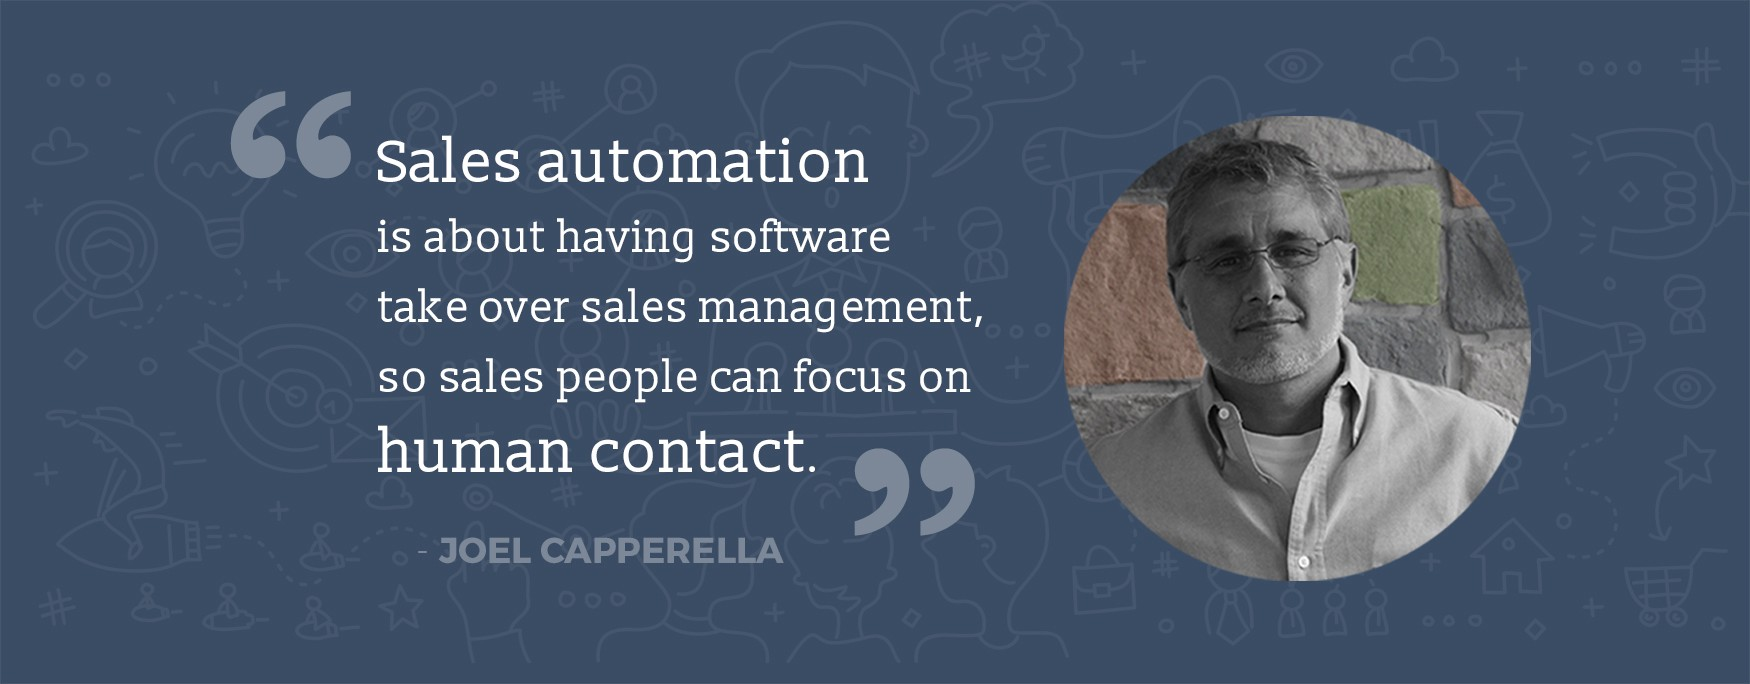 Sales automation is about having software take over sales management so sales people can focus on human contact, by Joel Capperella